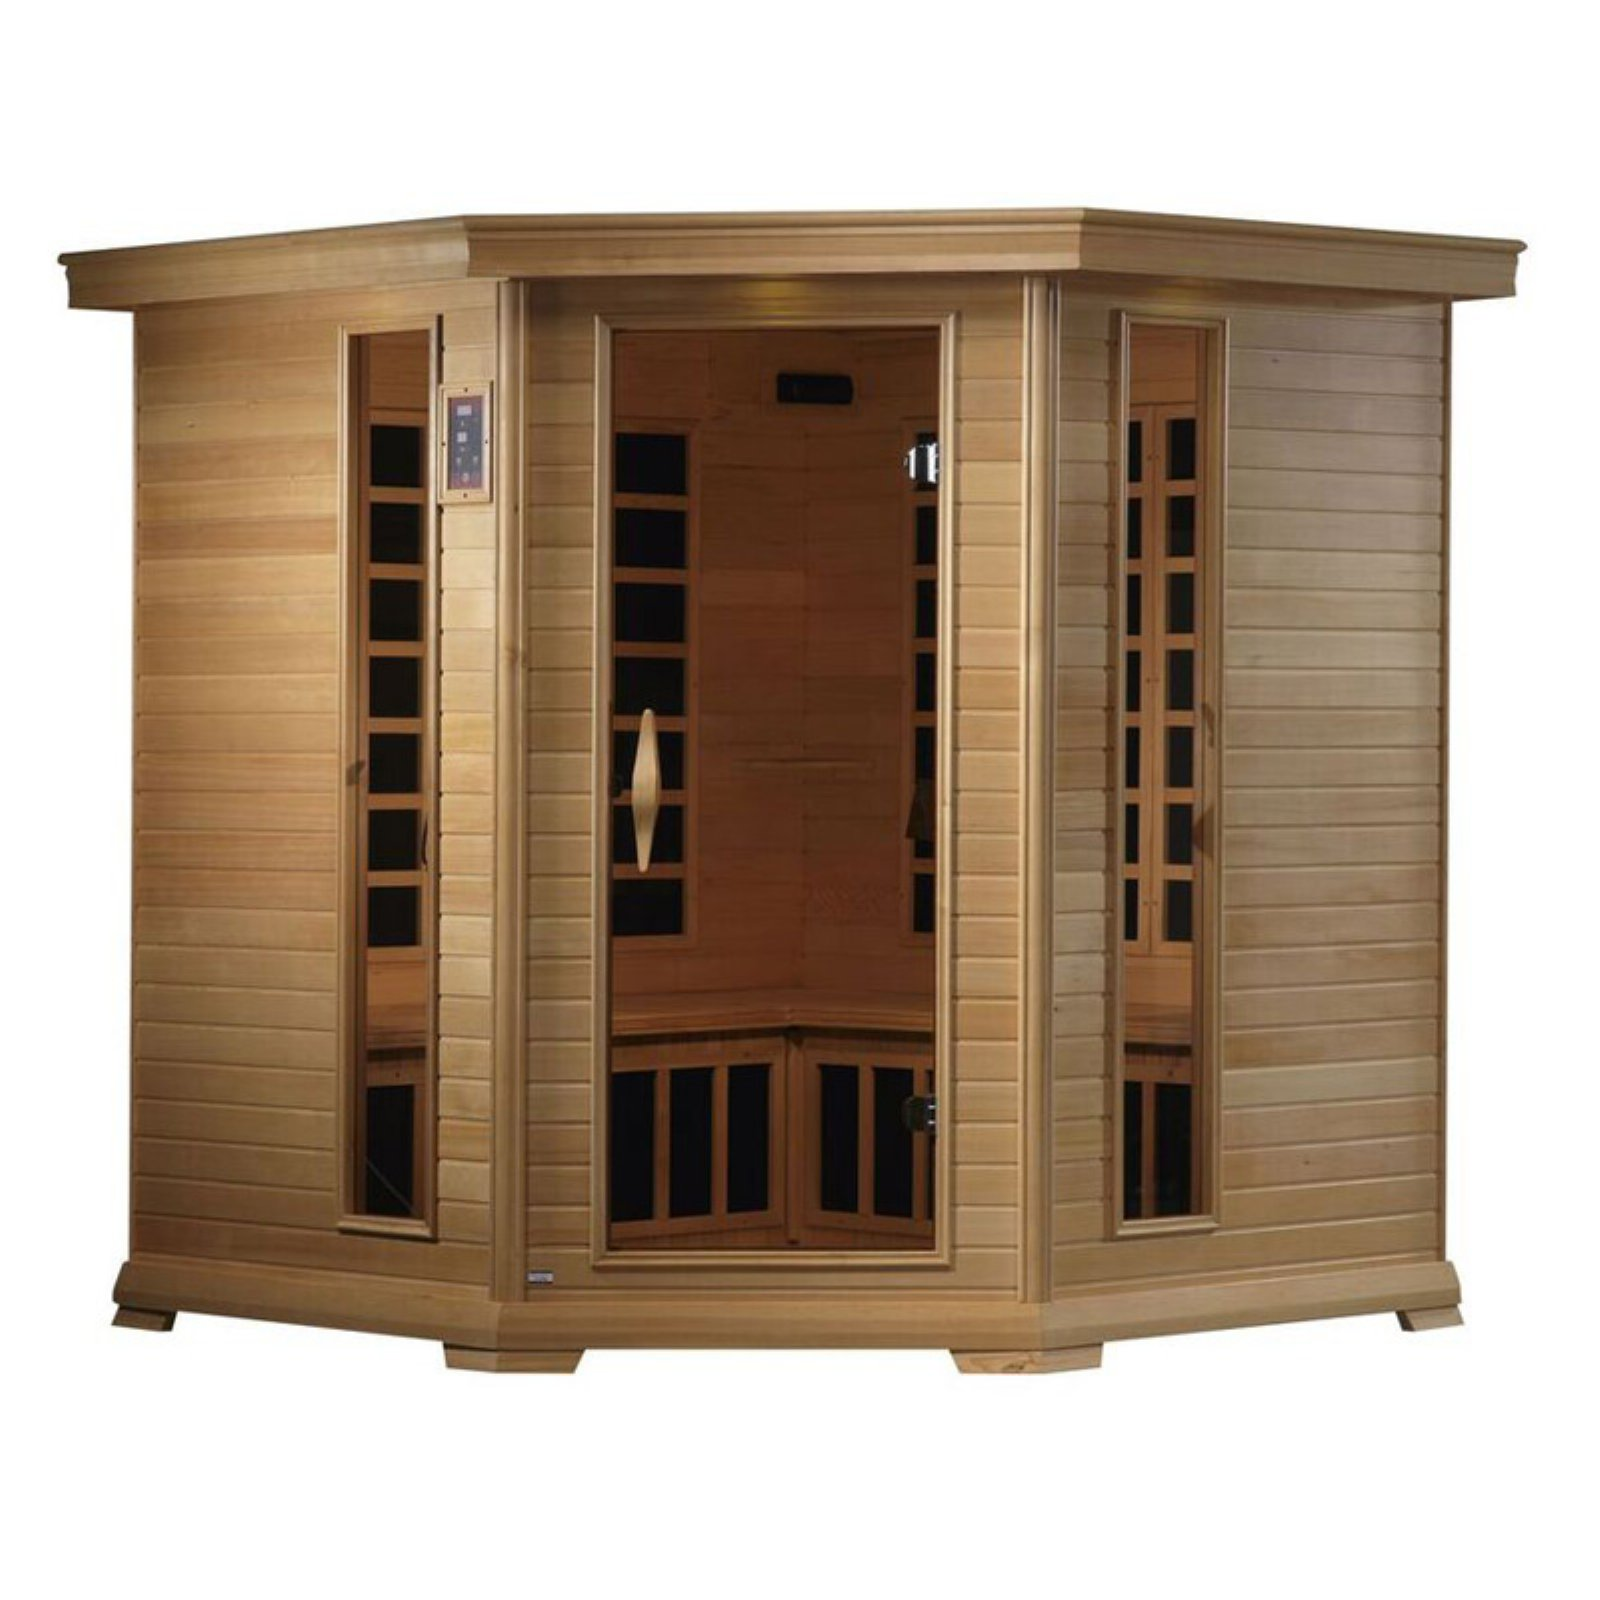 Golden Designs Inc. 4-5 Person FAR Infrared Corner Sauna